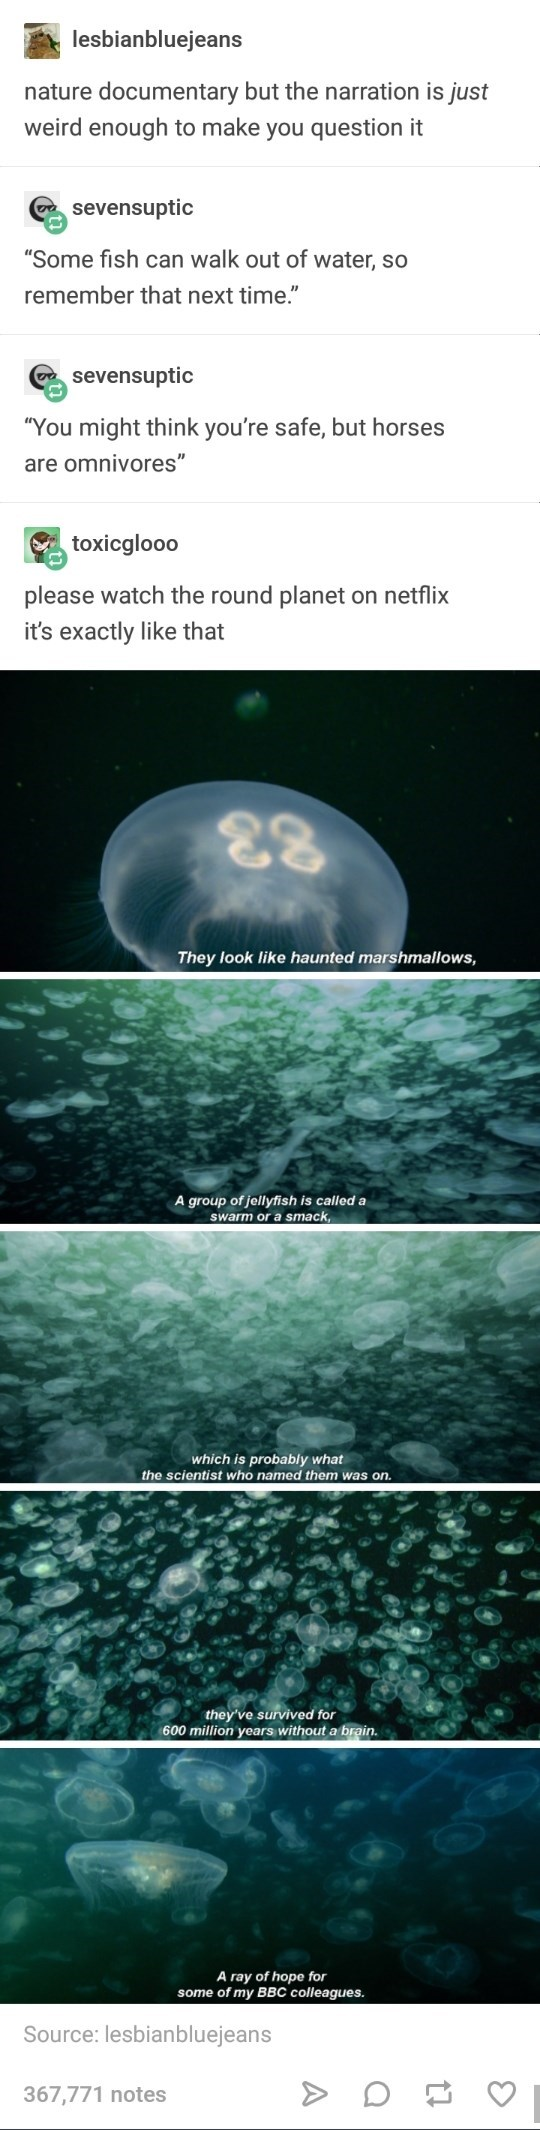 Tumblr - funny meme about nature documentaries